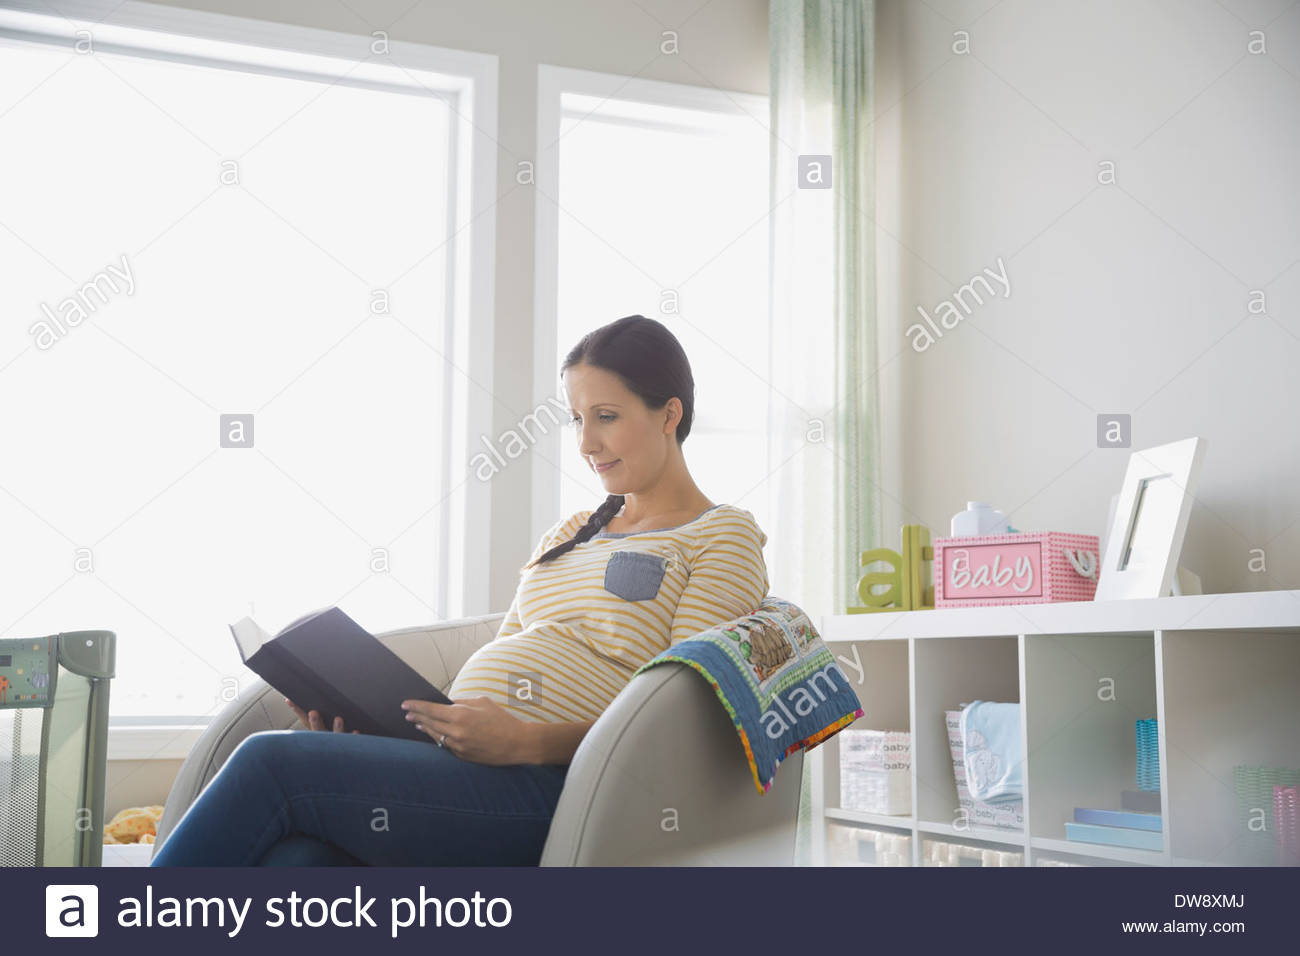 Pregnant woman reading book at home - Stock Image